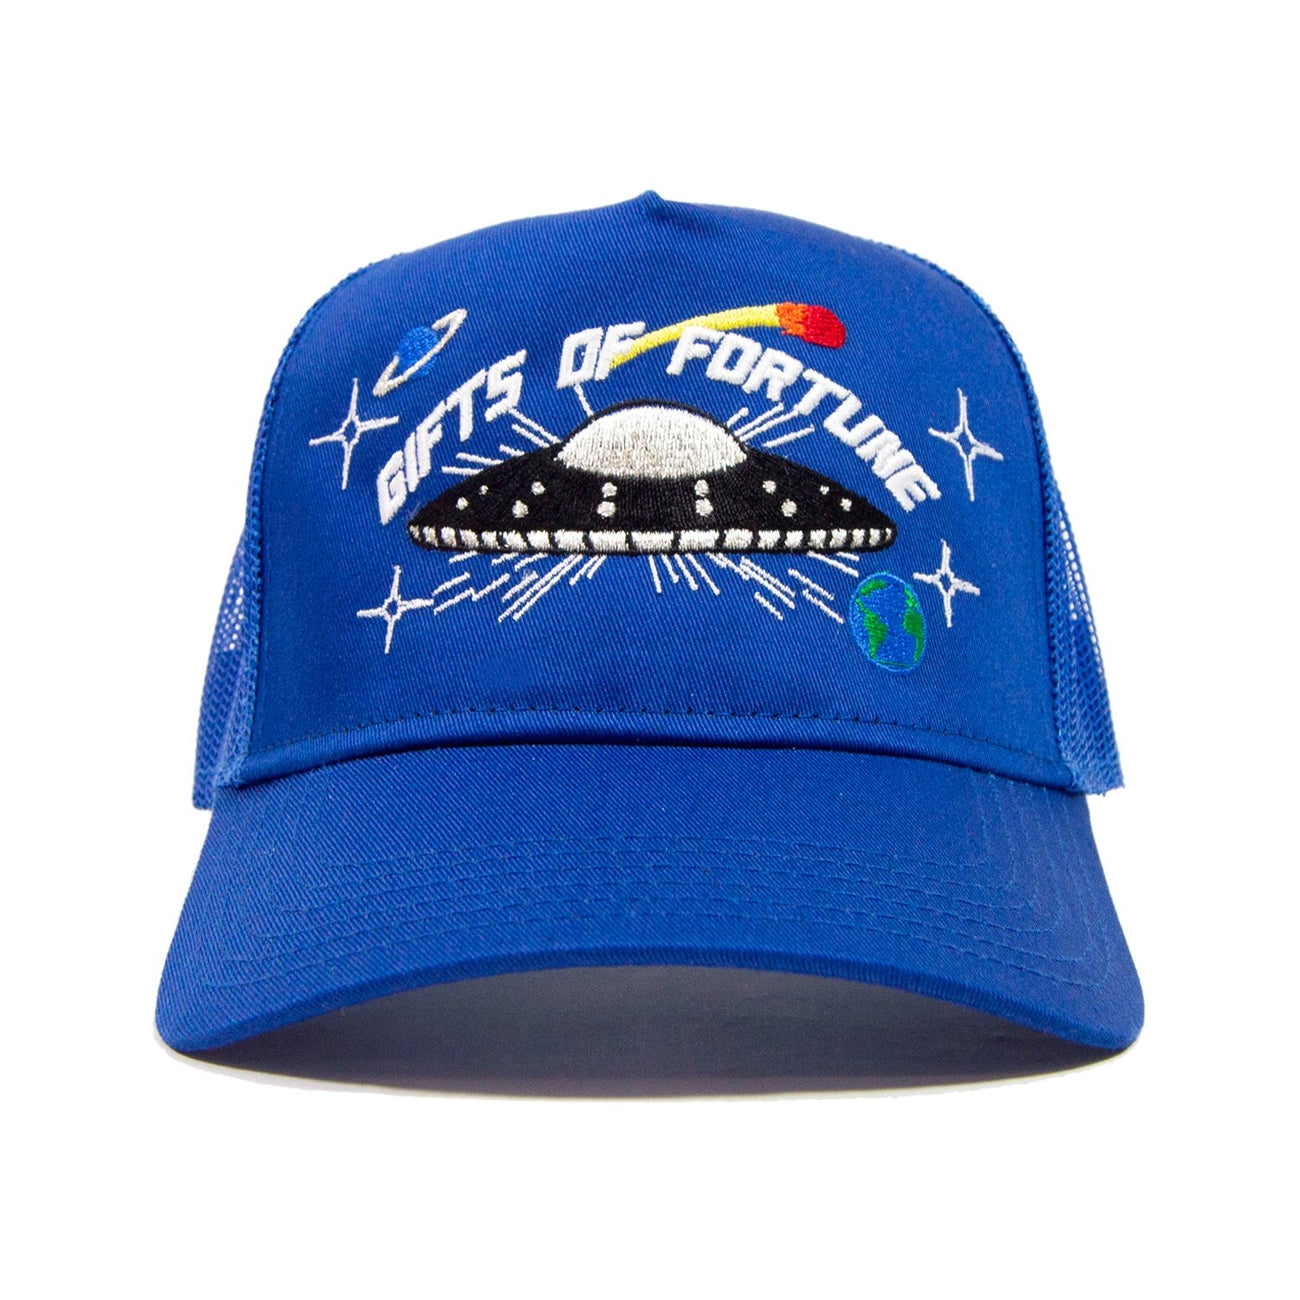 GIFTS OF FORTUNE They're Here Trucker | Blue - Capsule NYC